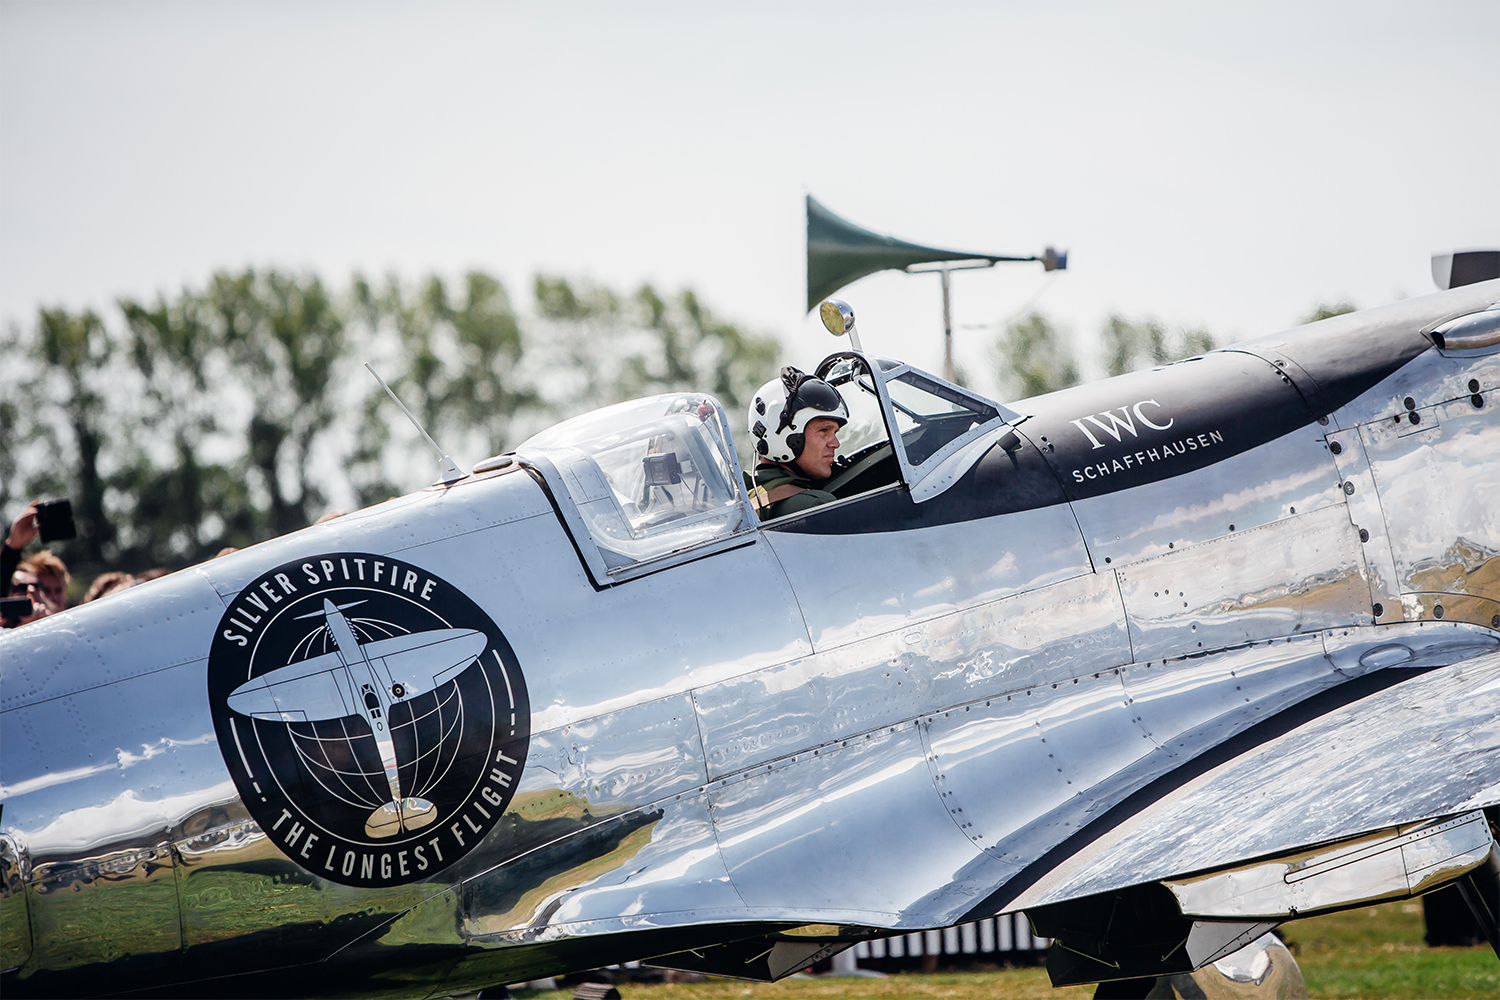 WWII Silver Spitfire Airplane at Goodwood Aerodrome